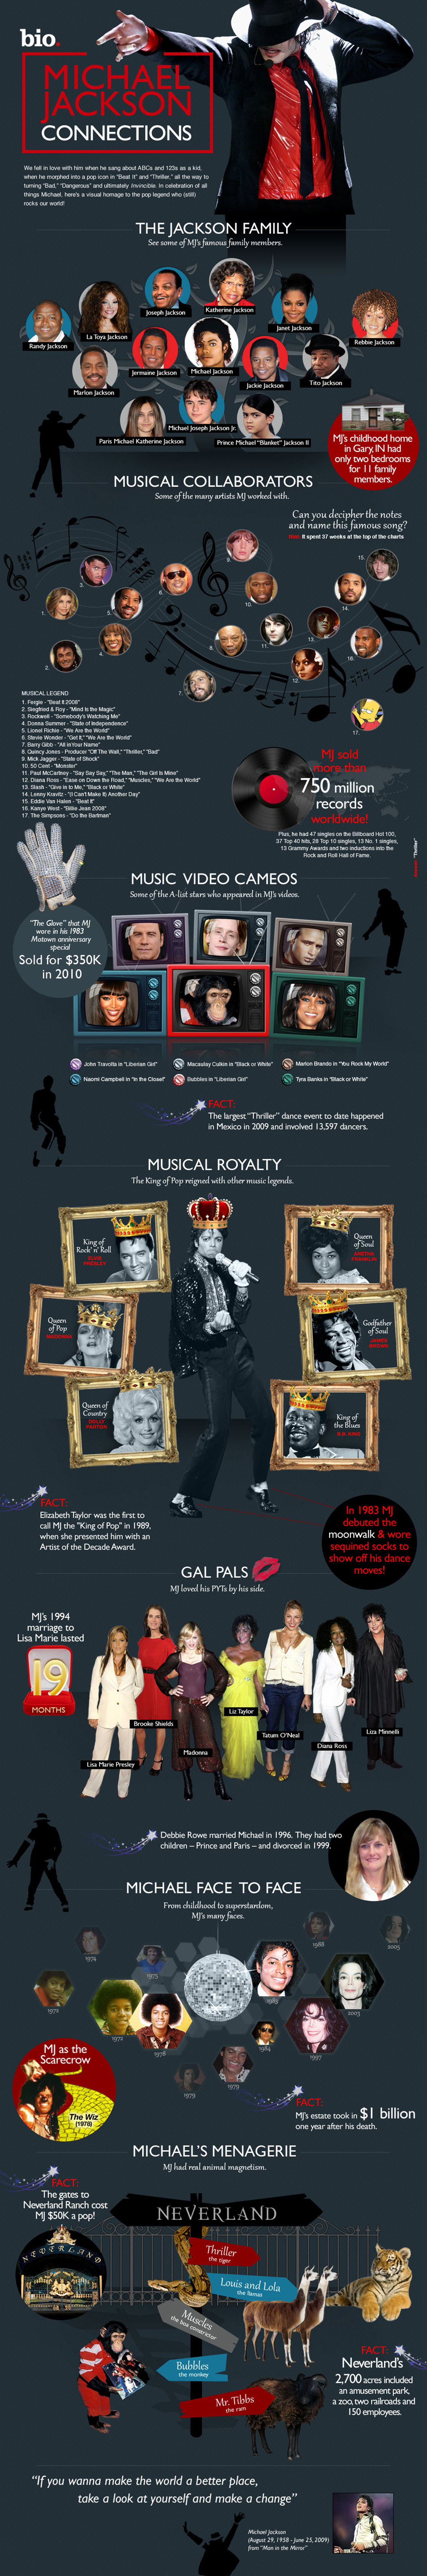 Michael Jackson Life and Work - Music Infographic